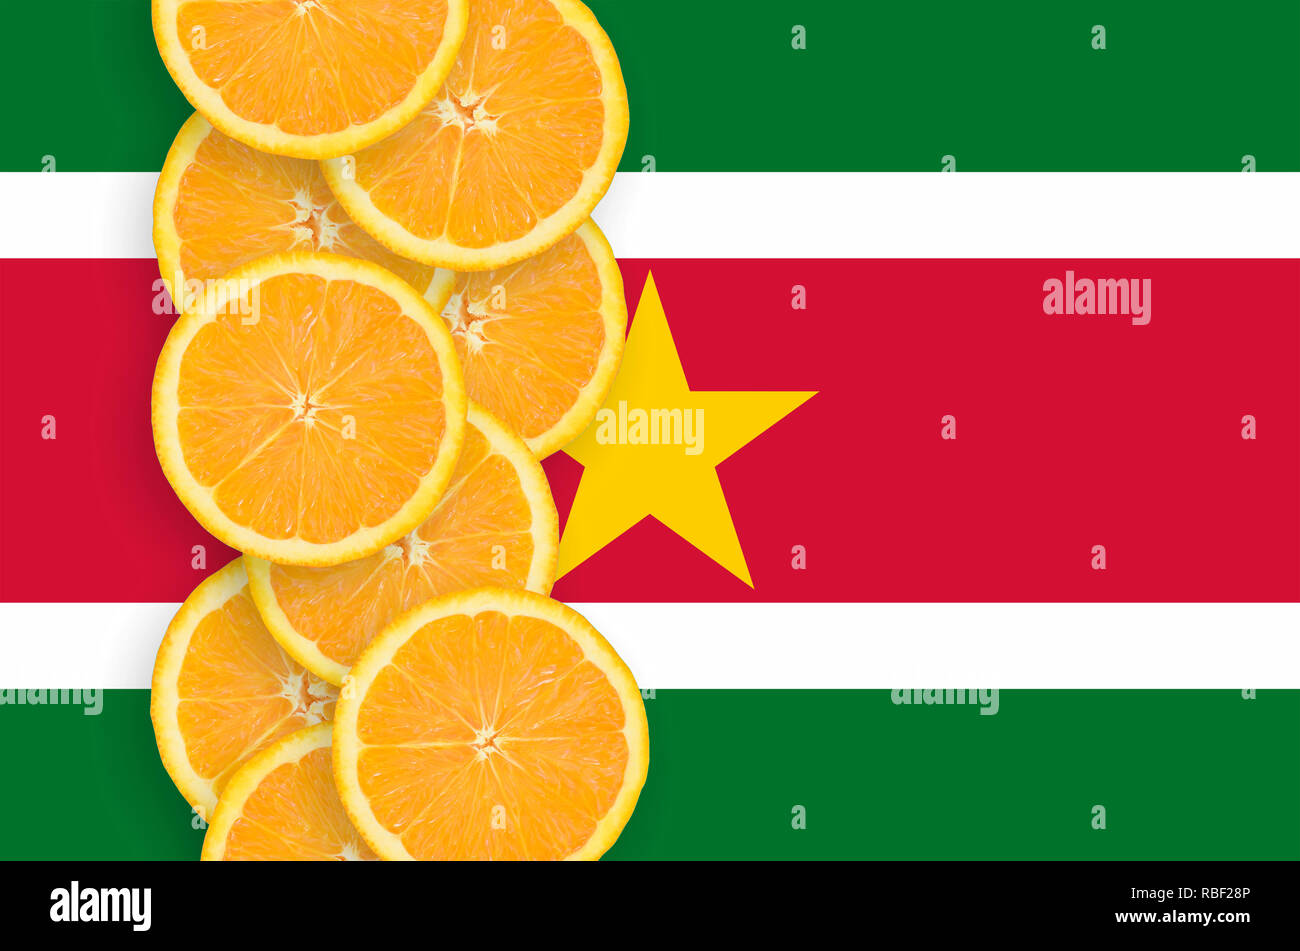 Suriname flag and vertical row of orange citrus fruit slices. Concept of growing as well as import and export of citrus fruits - Stock Image